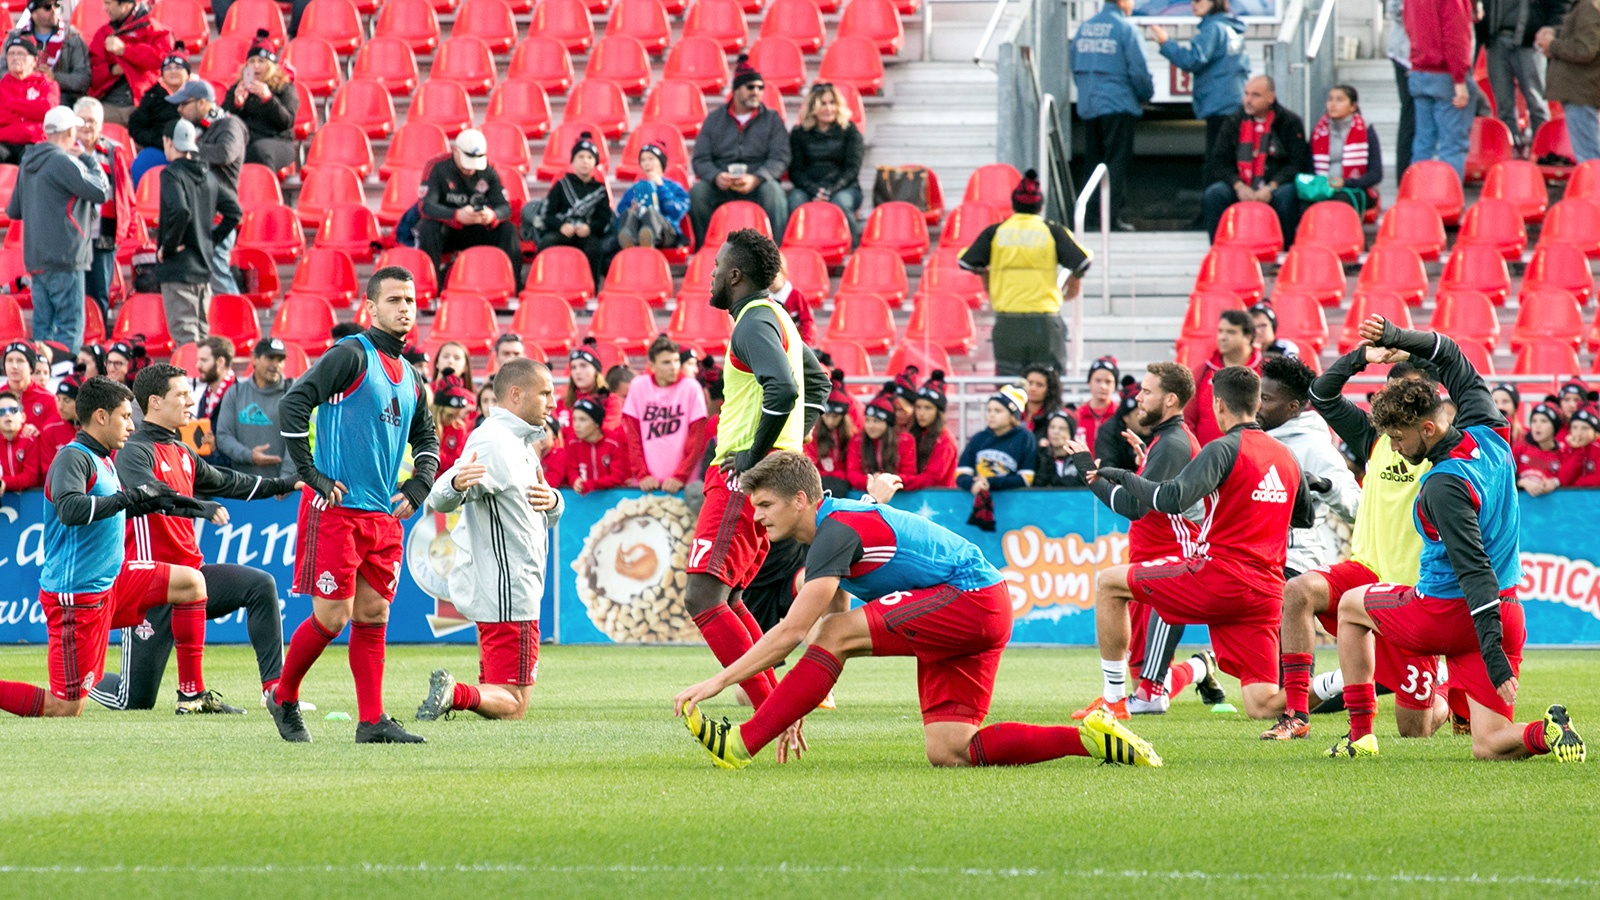 Toronto FC stretching before their final match of the 2016 MLS season.